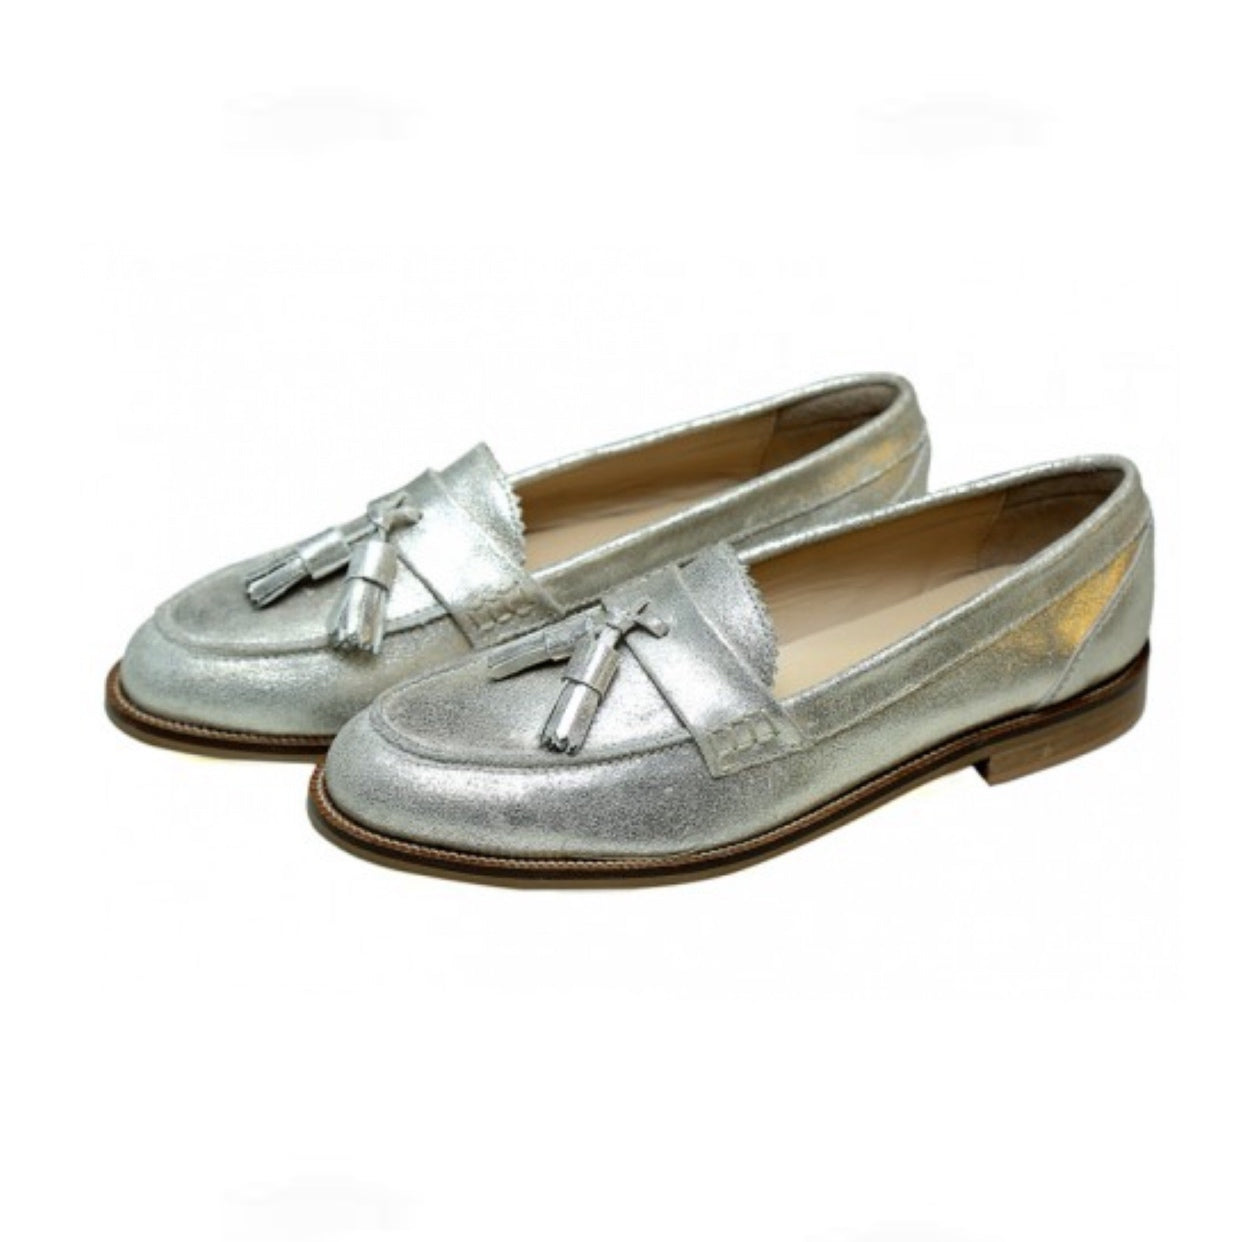 Silver Kiltie- Designer Shoes